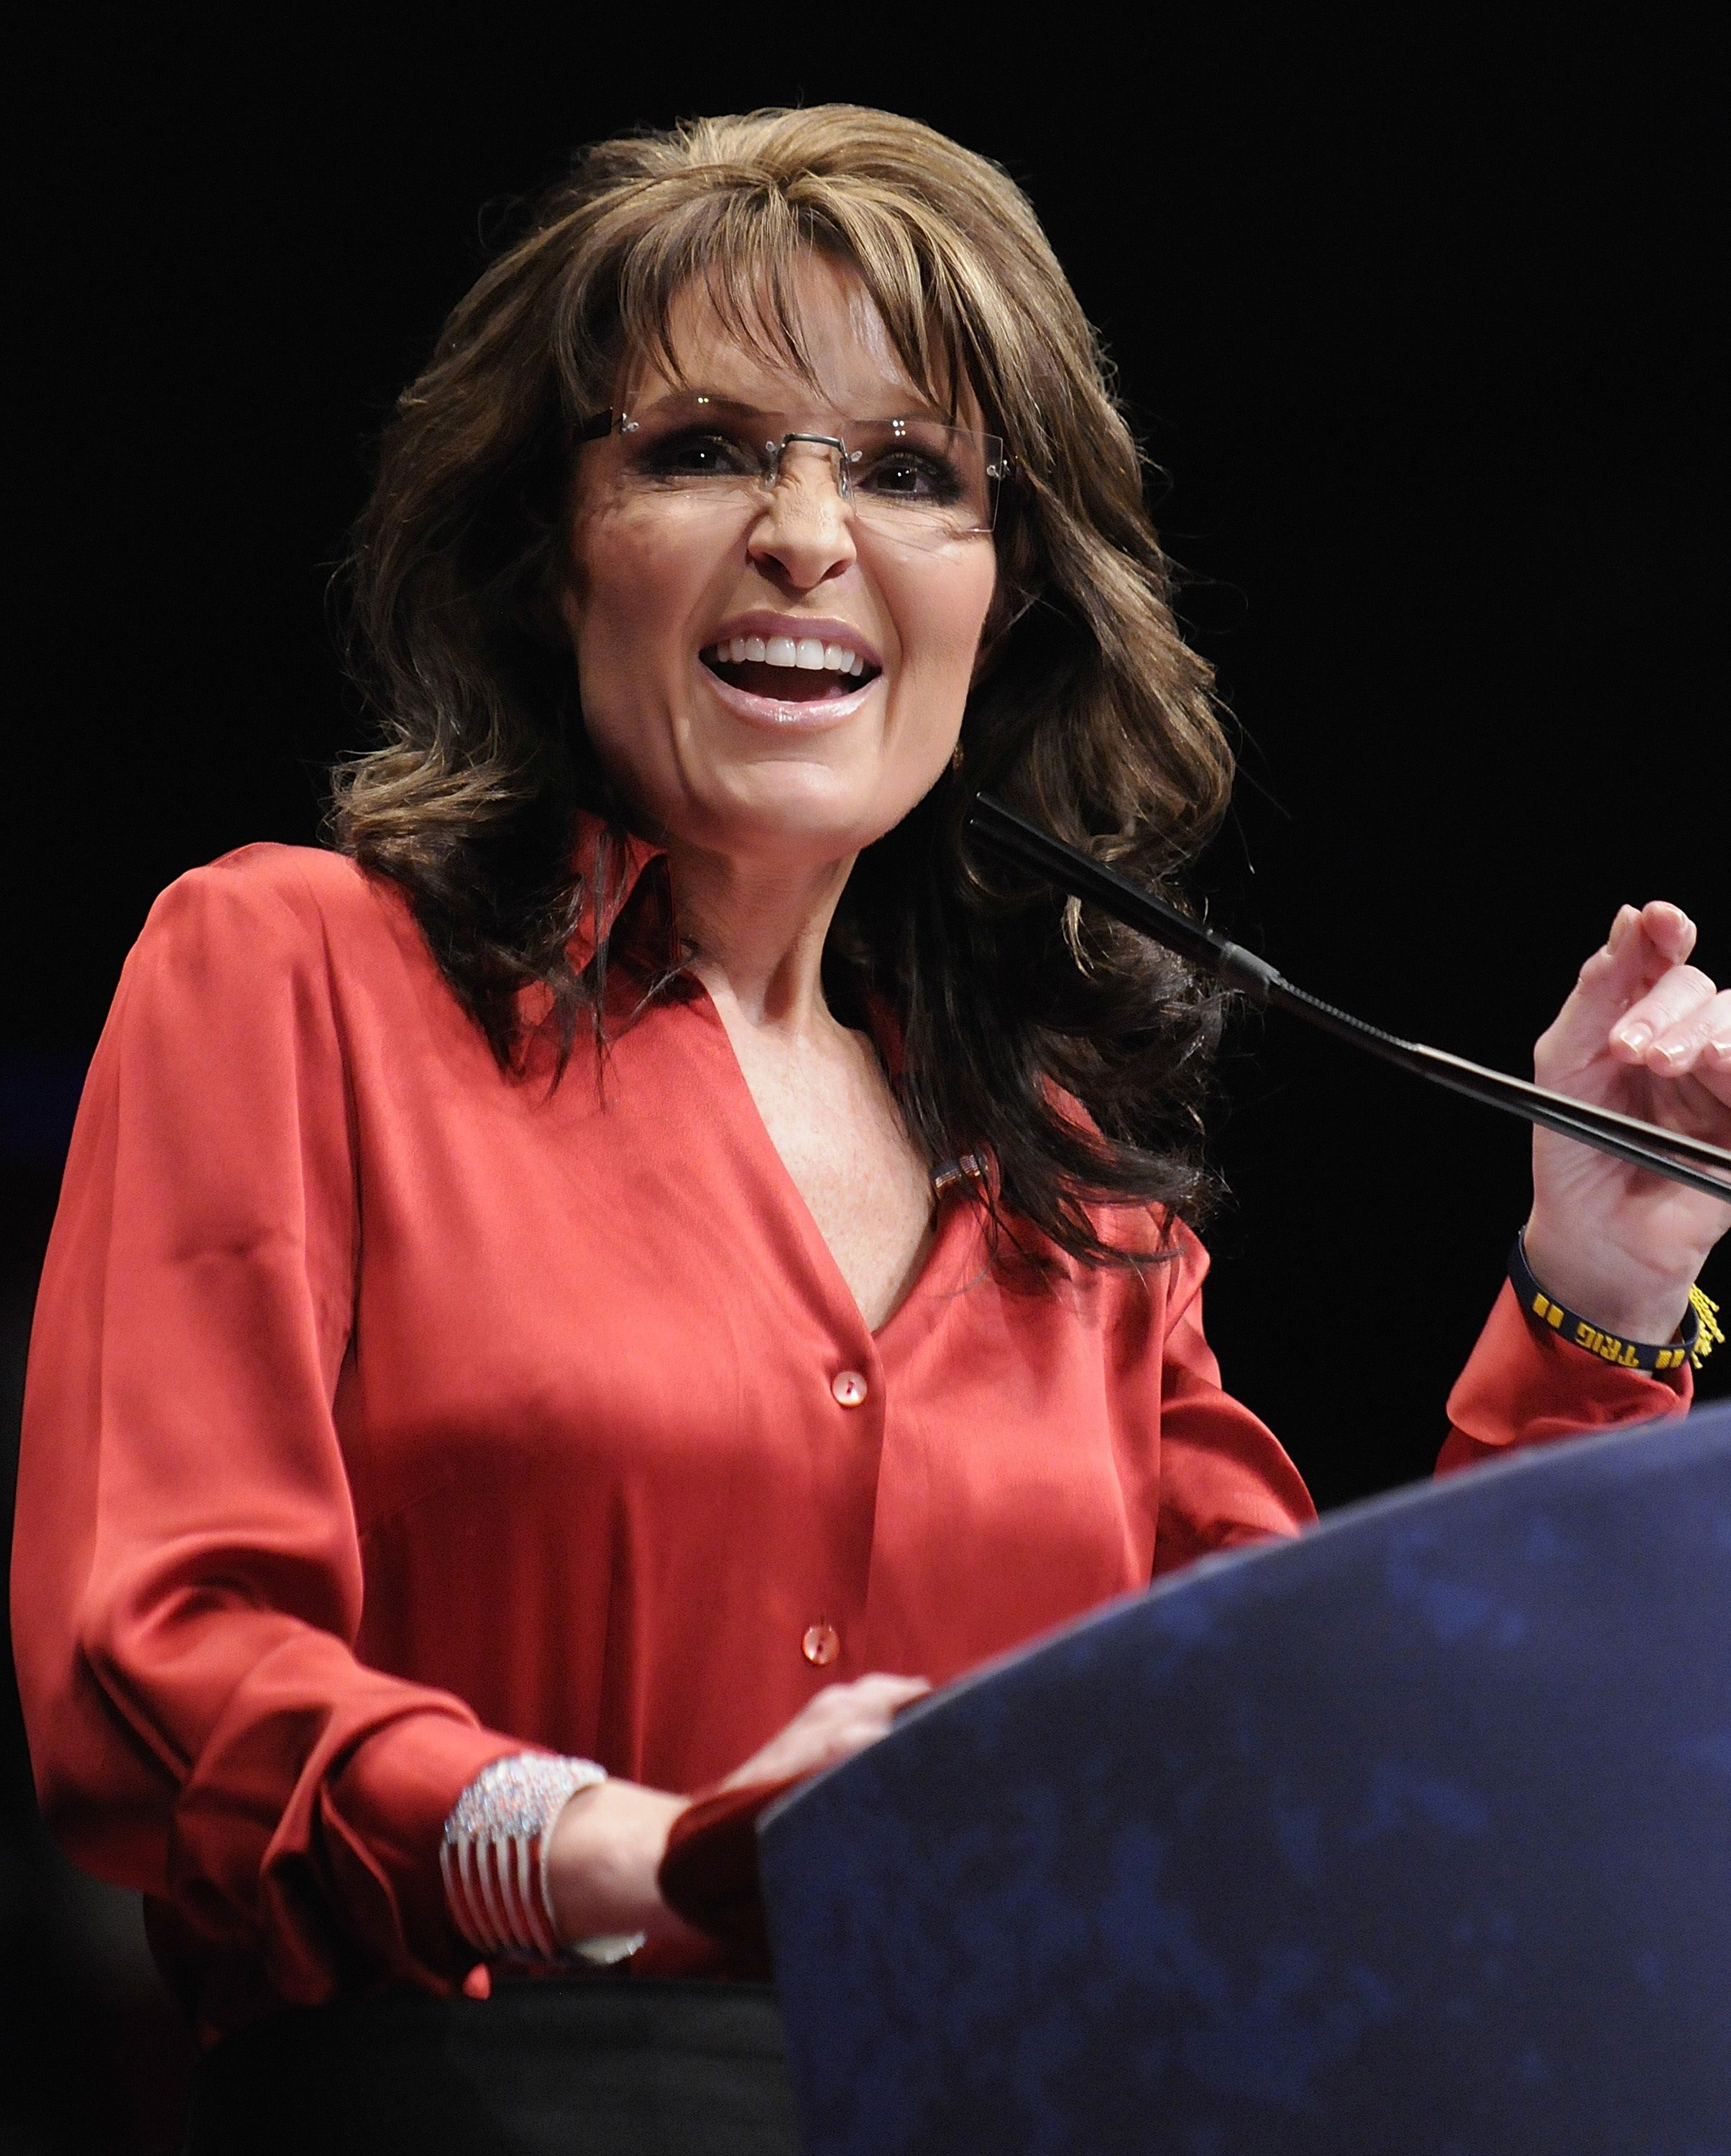 sarah palin clothes scandal